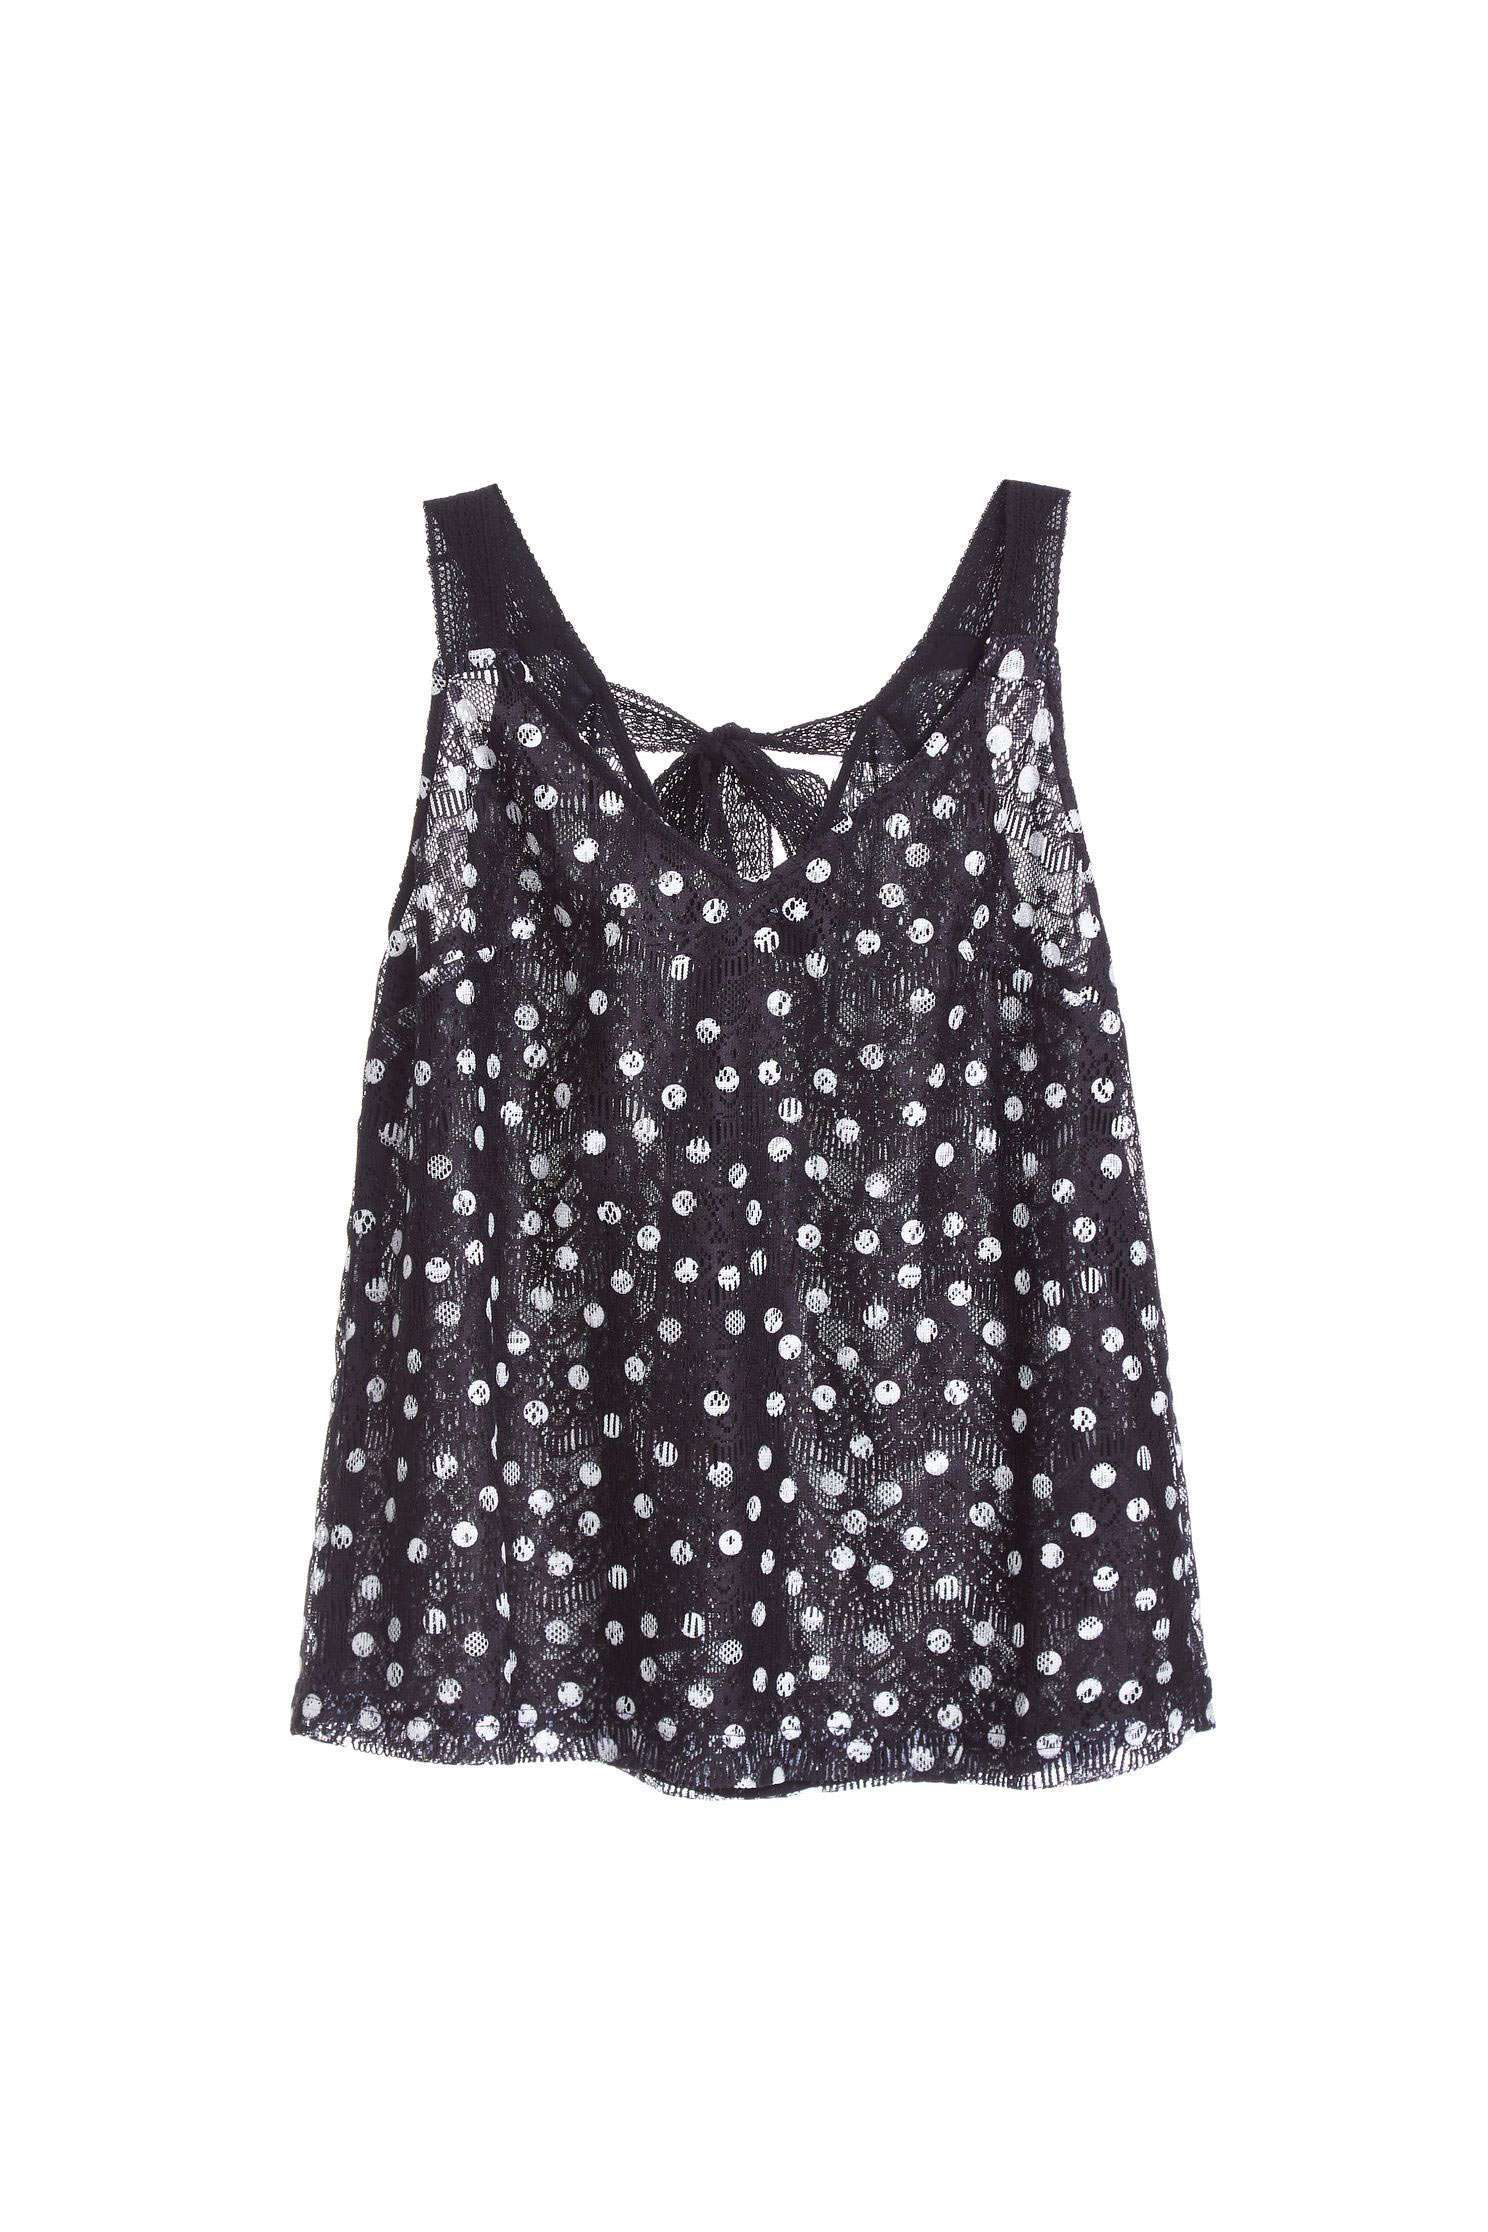 Full polka dots fashion vest